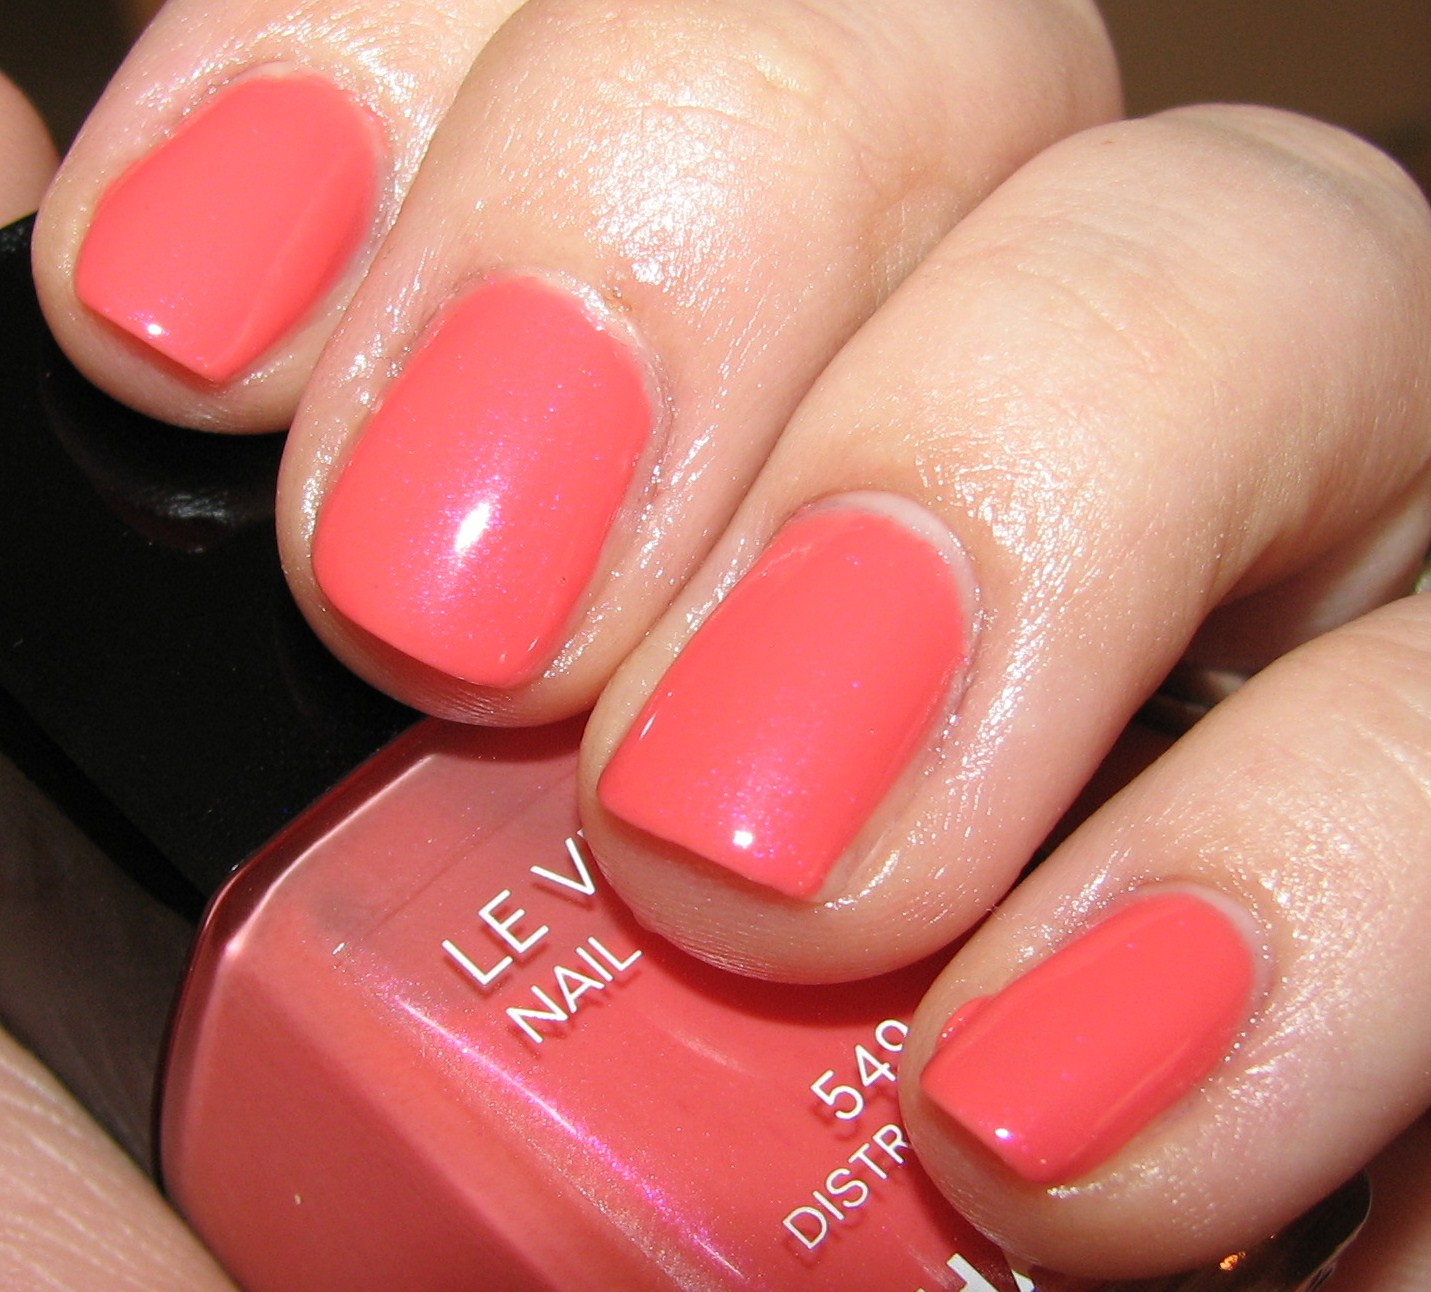 Chanel Distraction 549 Nail Polish Swatches And Review Roses Ultimes De Chanel Le Vernis